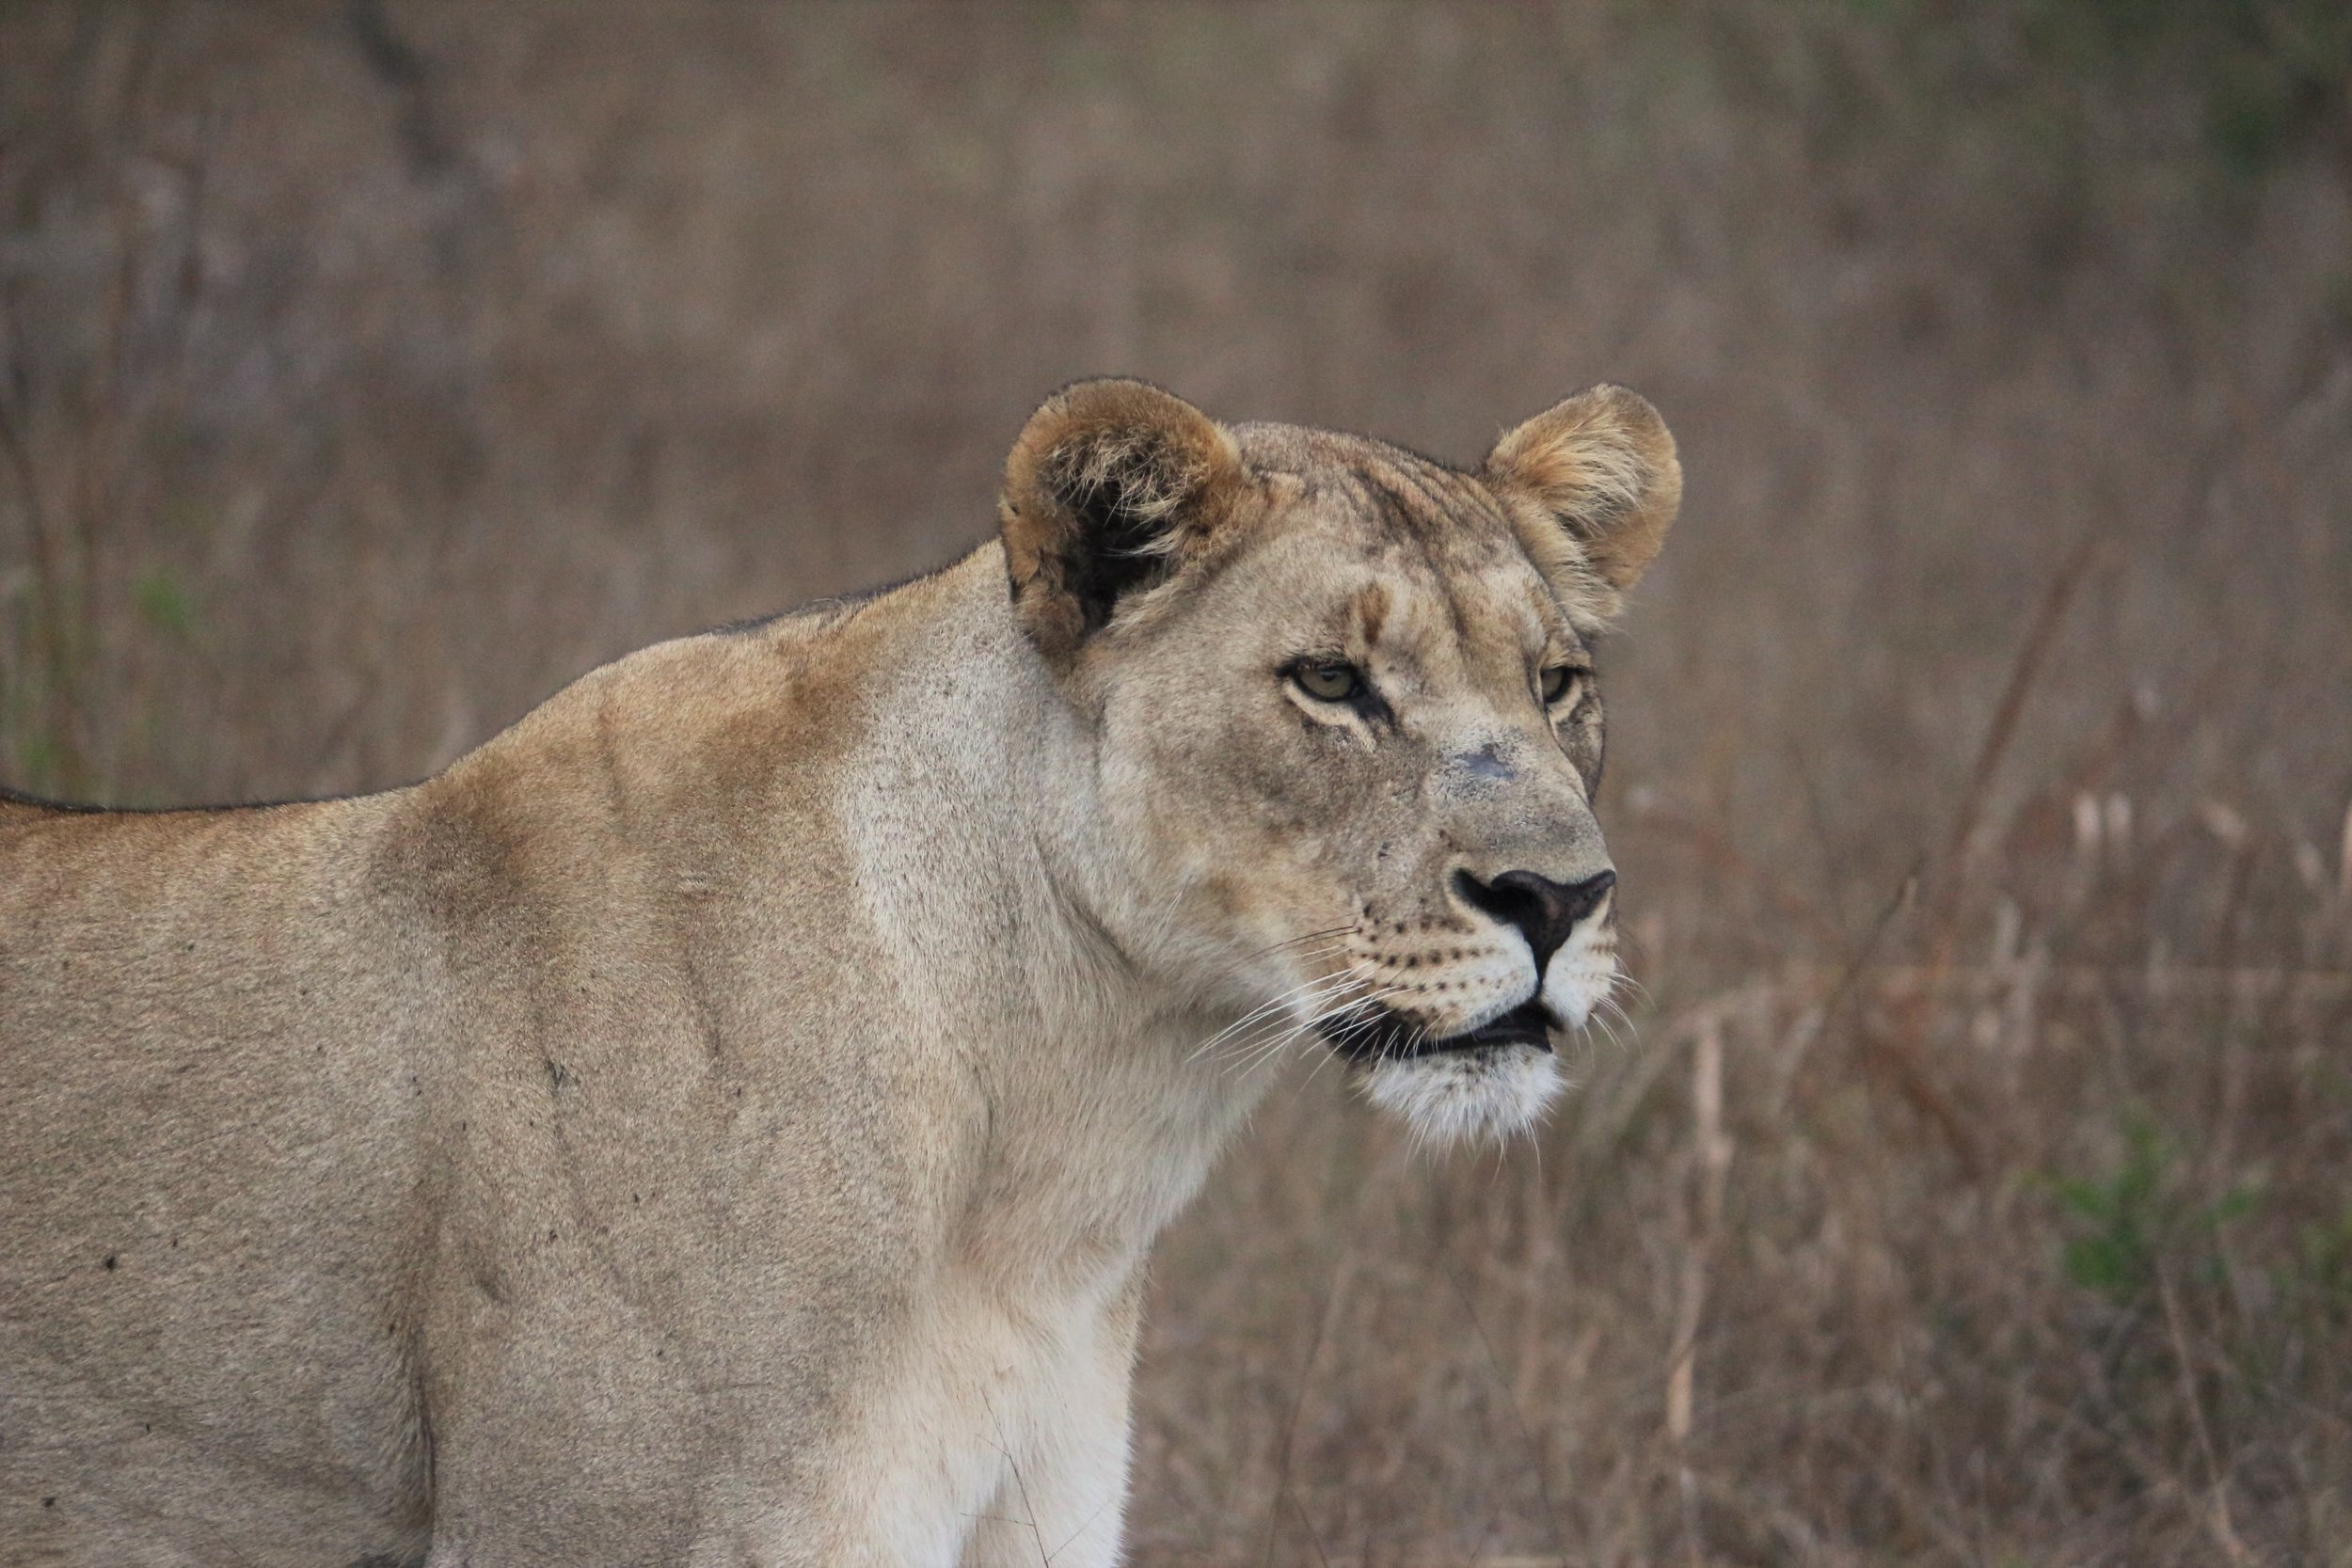 A lioness at Tembe Elephant Park. Photo Credit: Clinton Wright